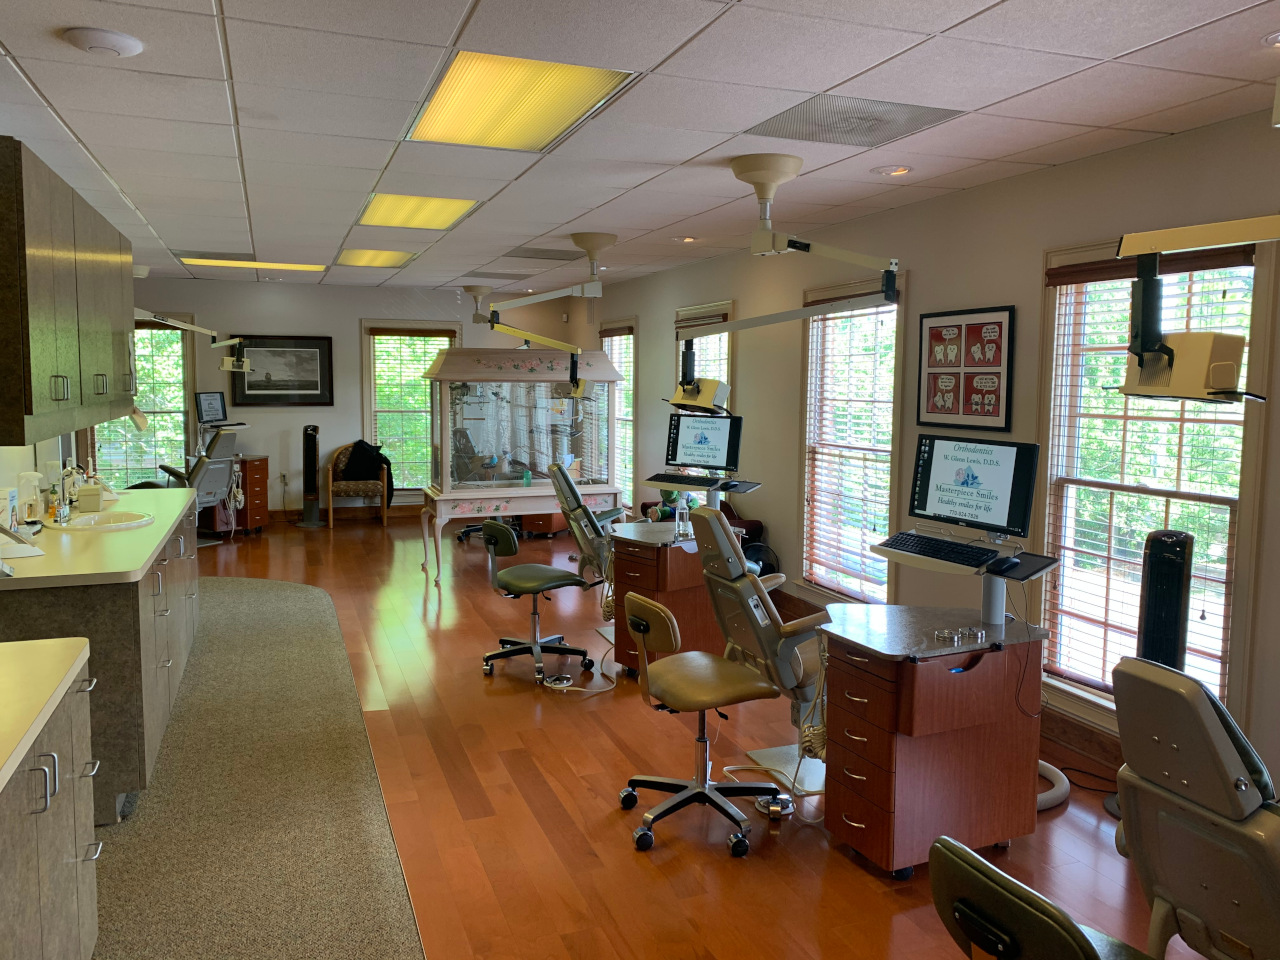 Orthodontic station at Masterpiece Smiles Marietta location